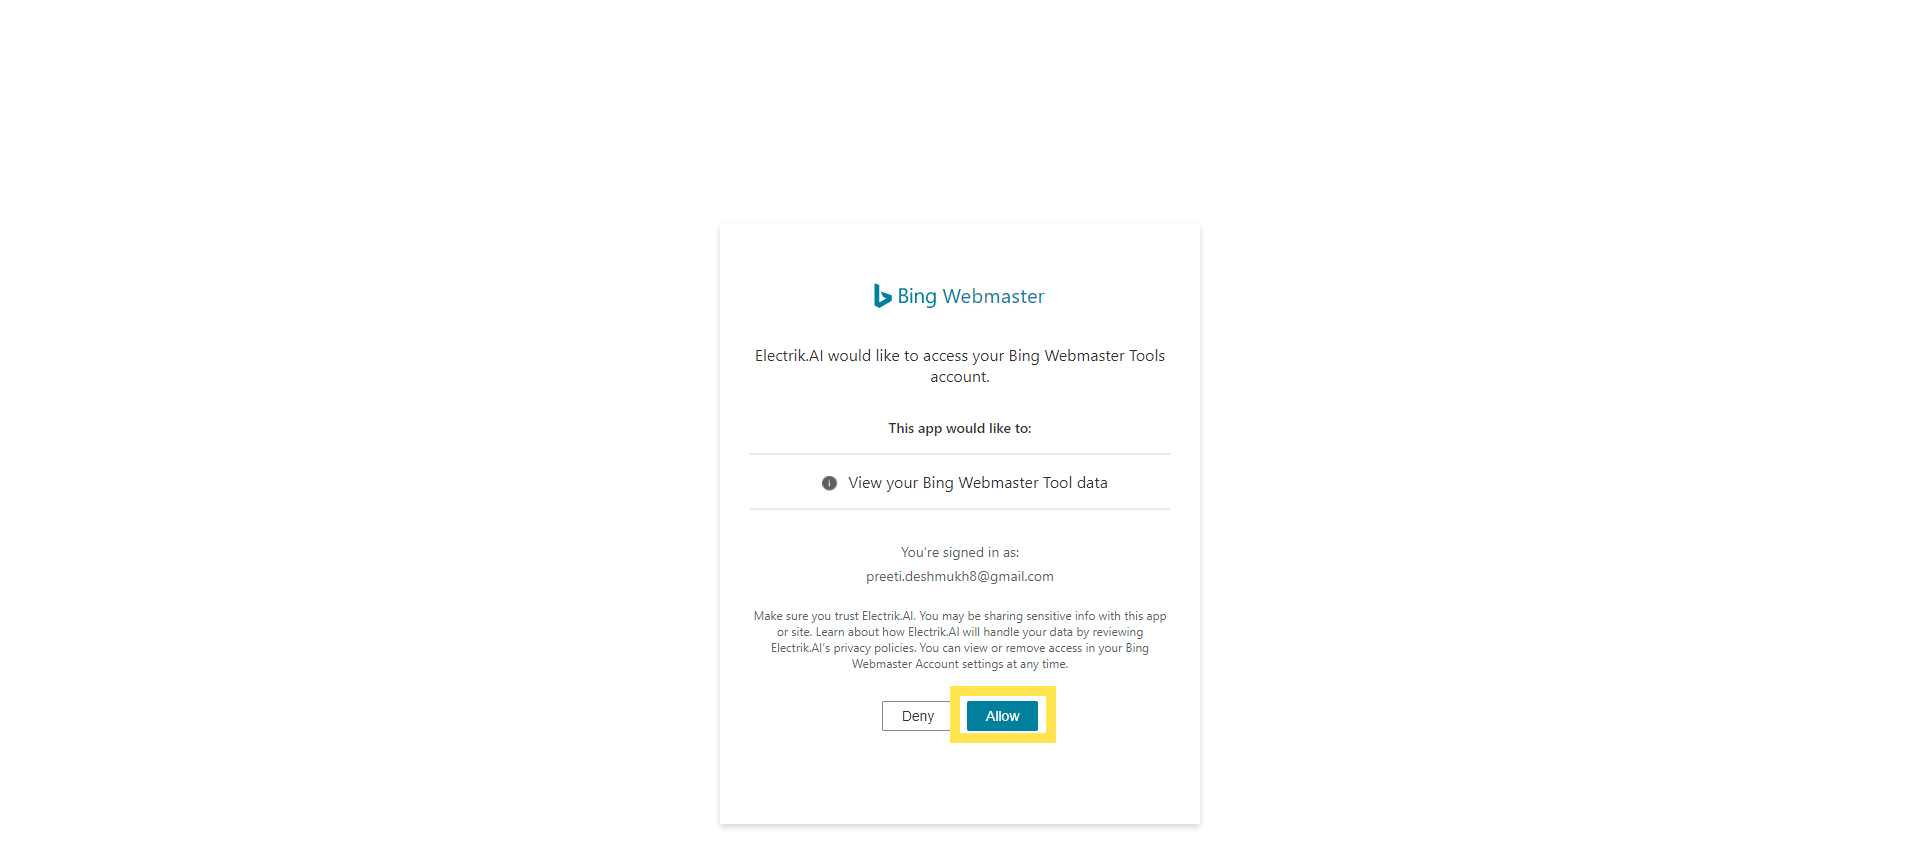 Allow Electrik.AI to access your Bing Webmaster account